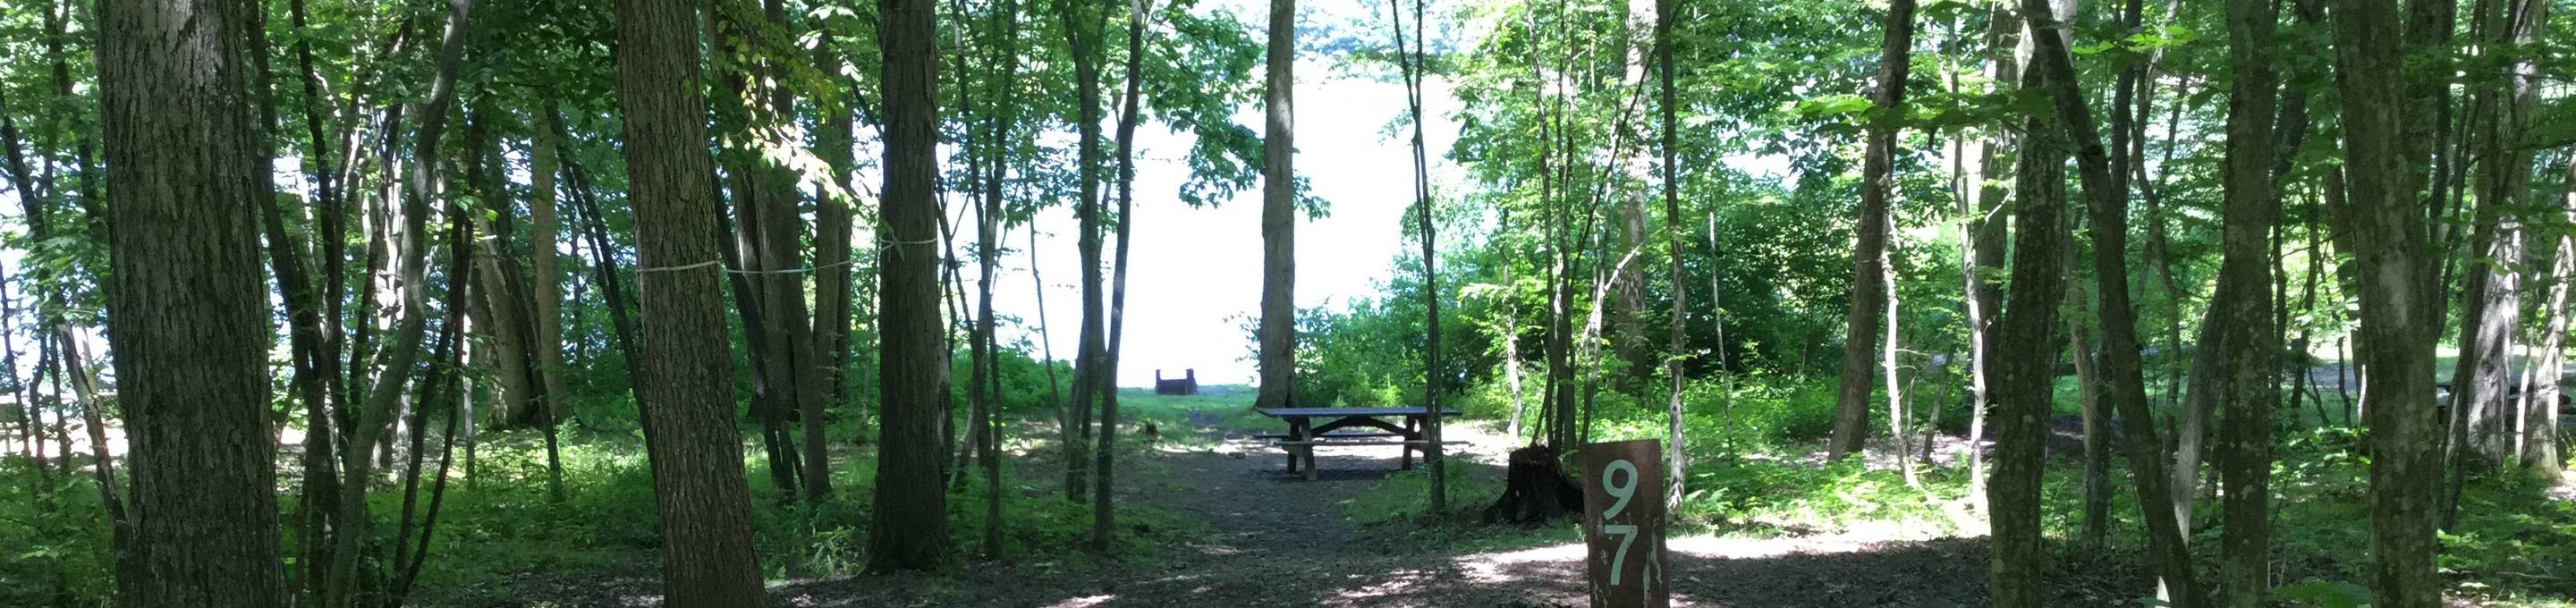 Willow Bay Recreation Area: Site 97